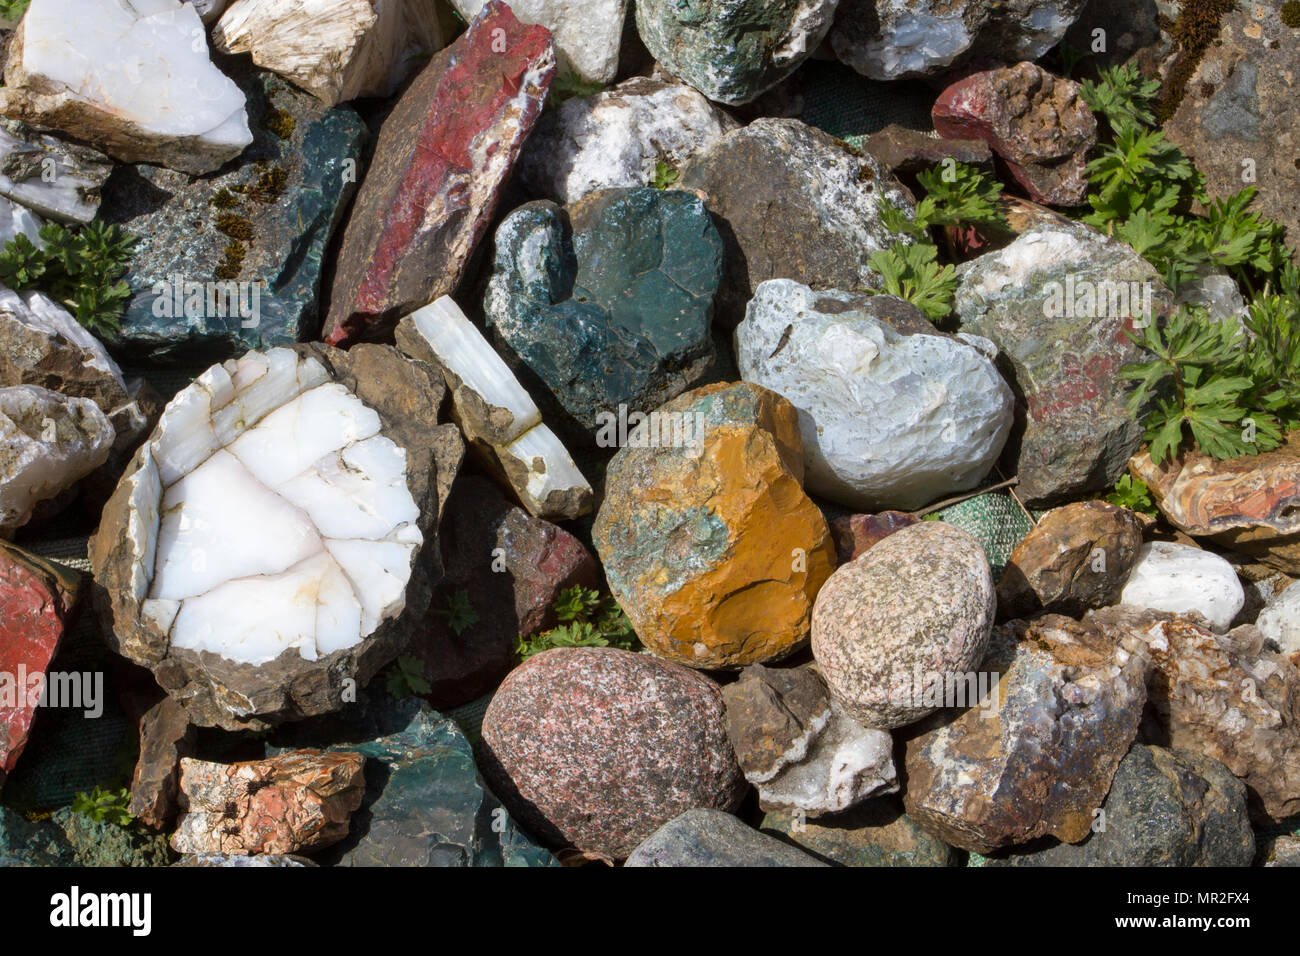 Minerals or clasts, igneous, sedimentary and metamorphic rocks of Icelanz - Stock Image